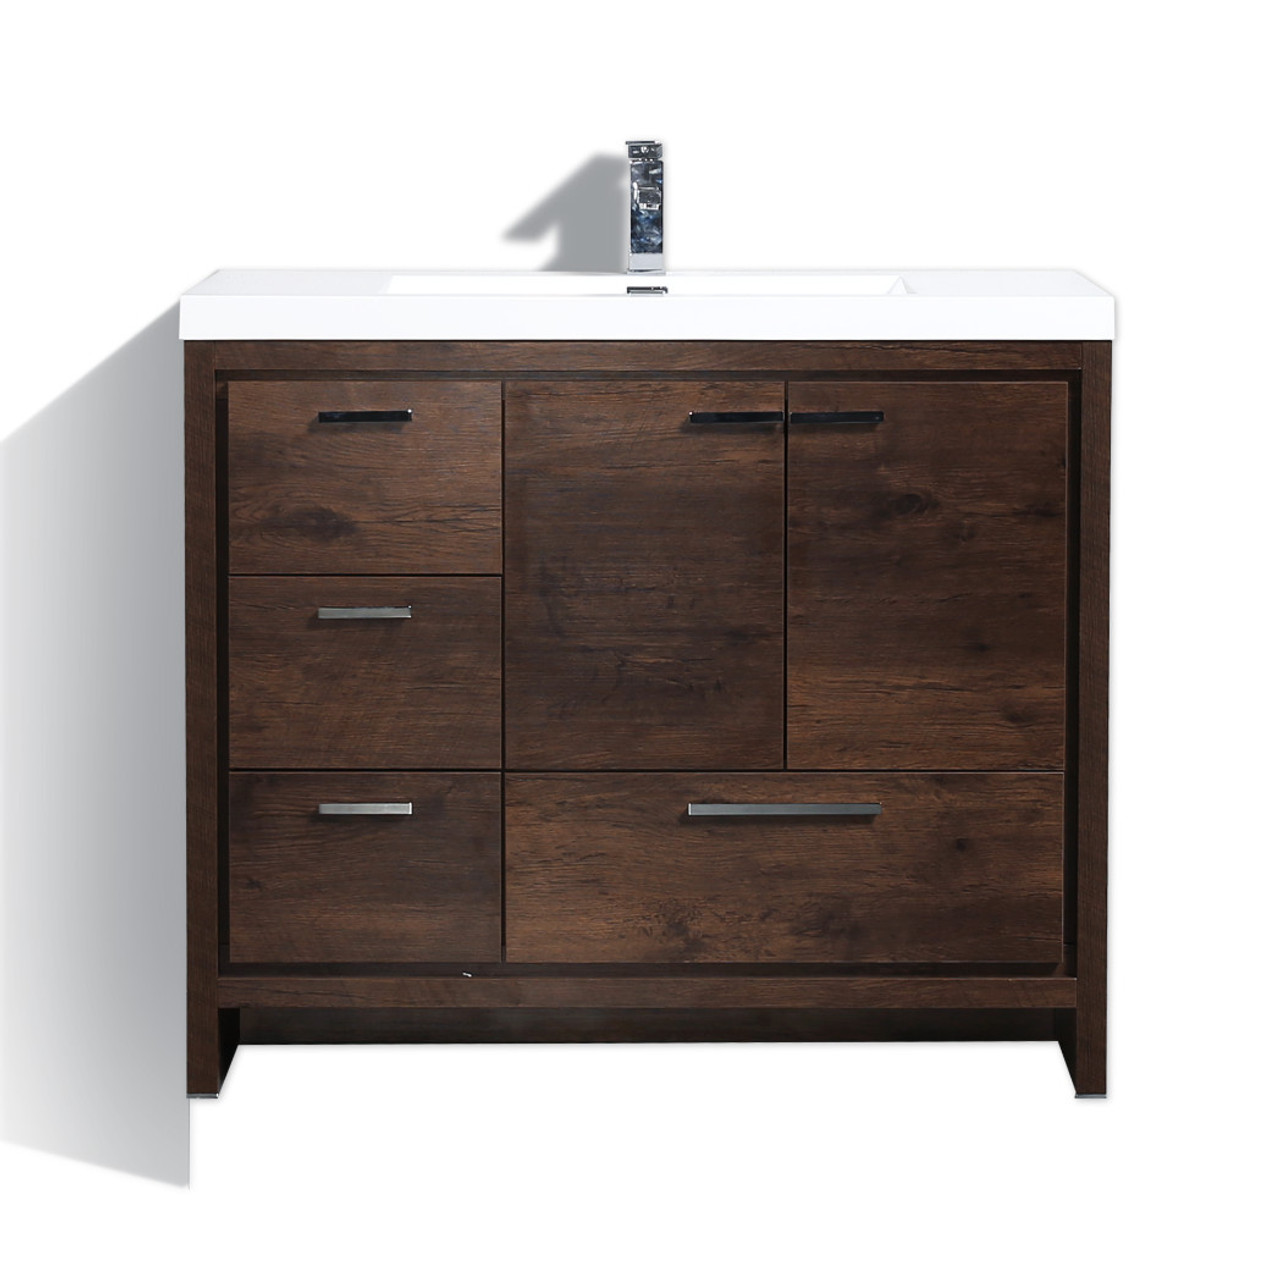 Marvelous Dolce 42 Bath Vanity With Left Side Drawers And Reinforced Acrylic Sink Download Free Architecture Designs Boapuretrmadebymaigaardcom